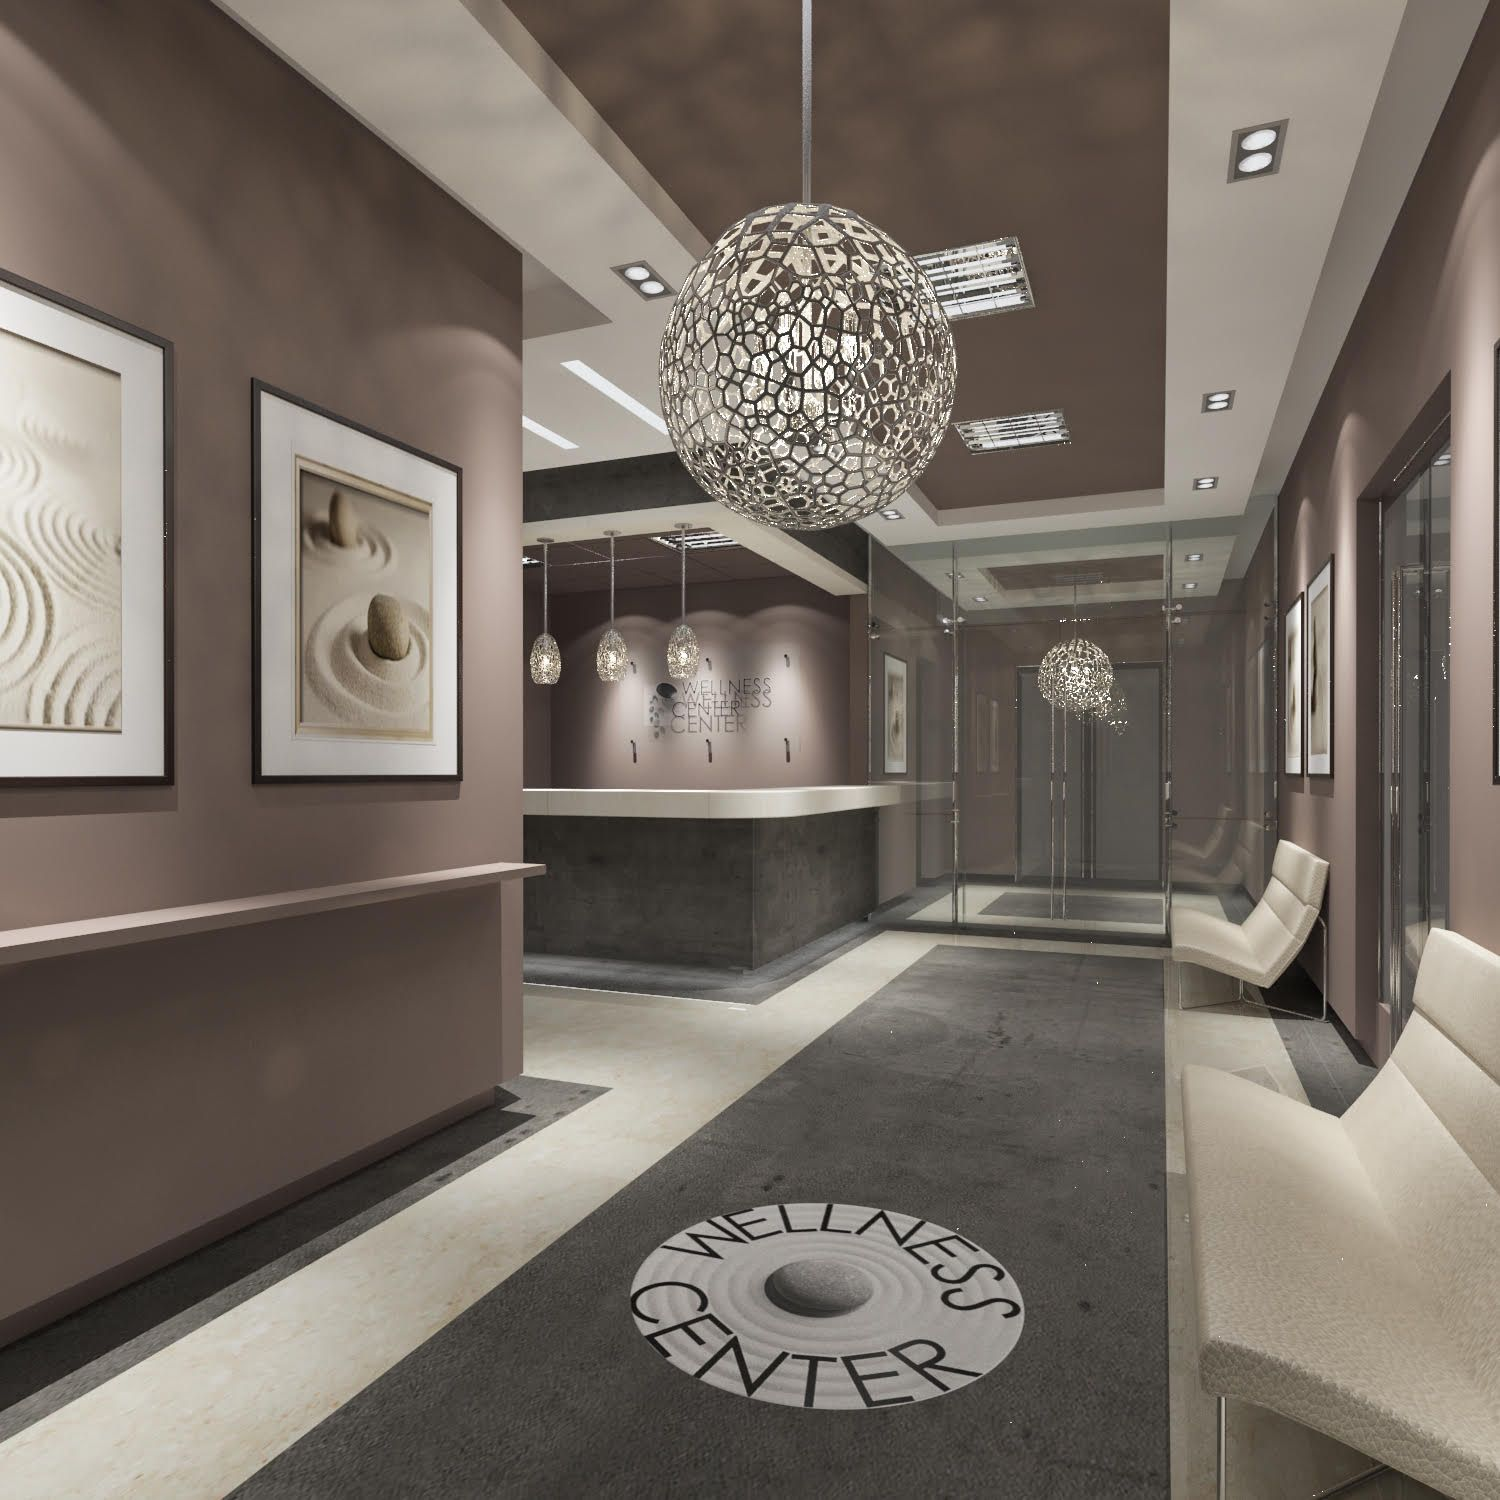 Taupe Walls Chic Sophisticated Glamorousthis Wellness Center Looks Amazing